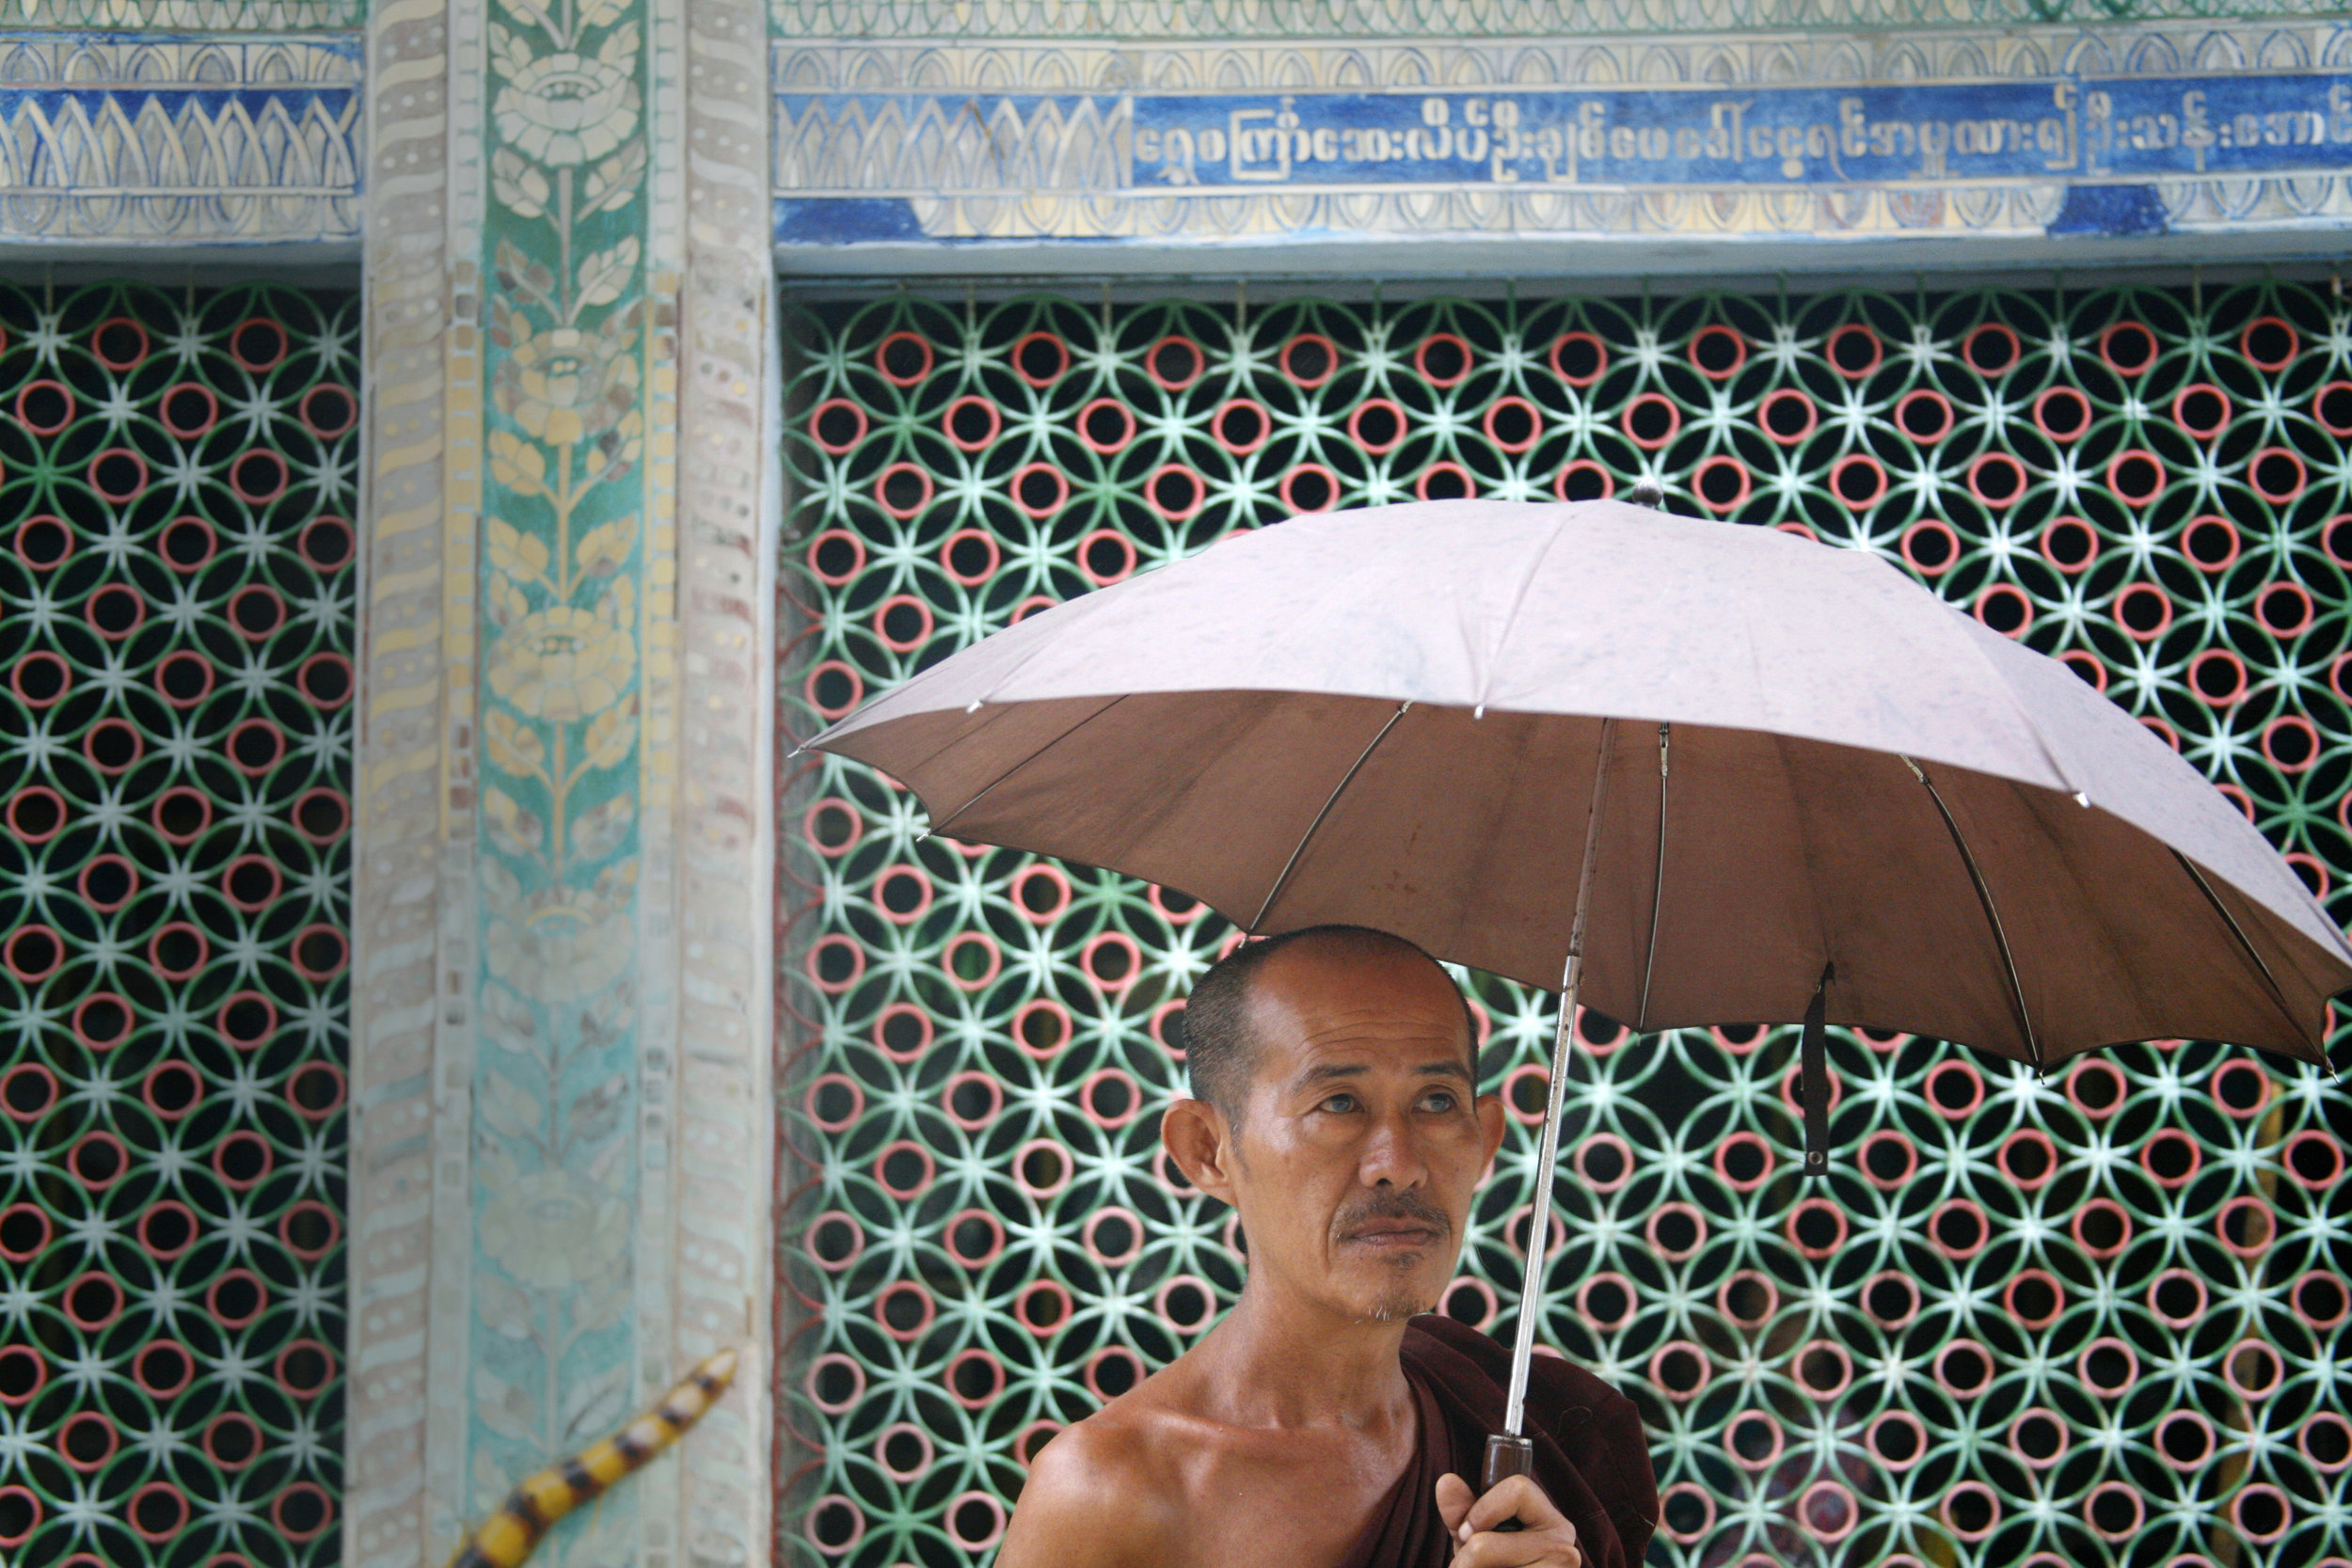 A monk protected himself from sporadic rain showers outside of a temple in Mt. Popa, Myanmar.